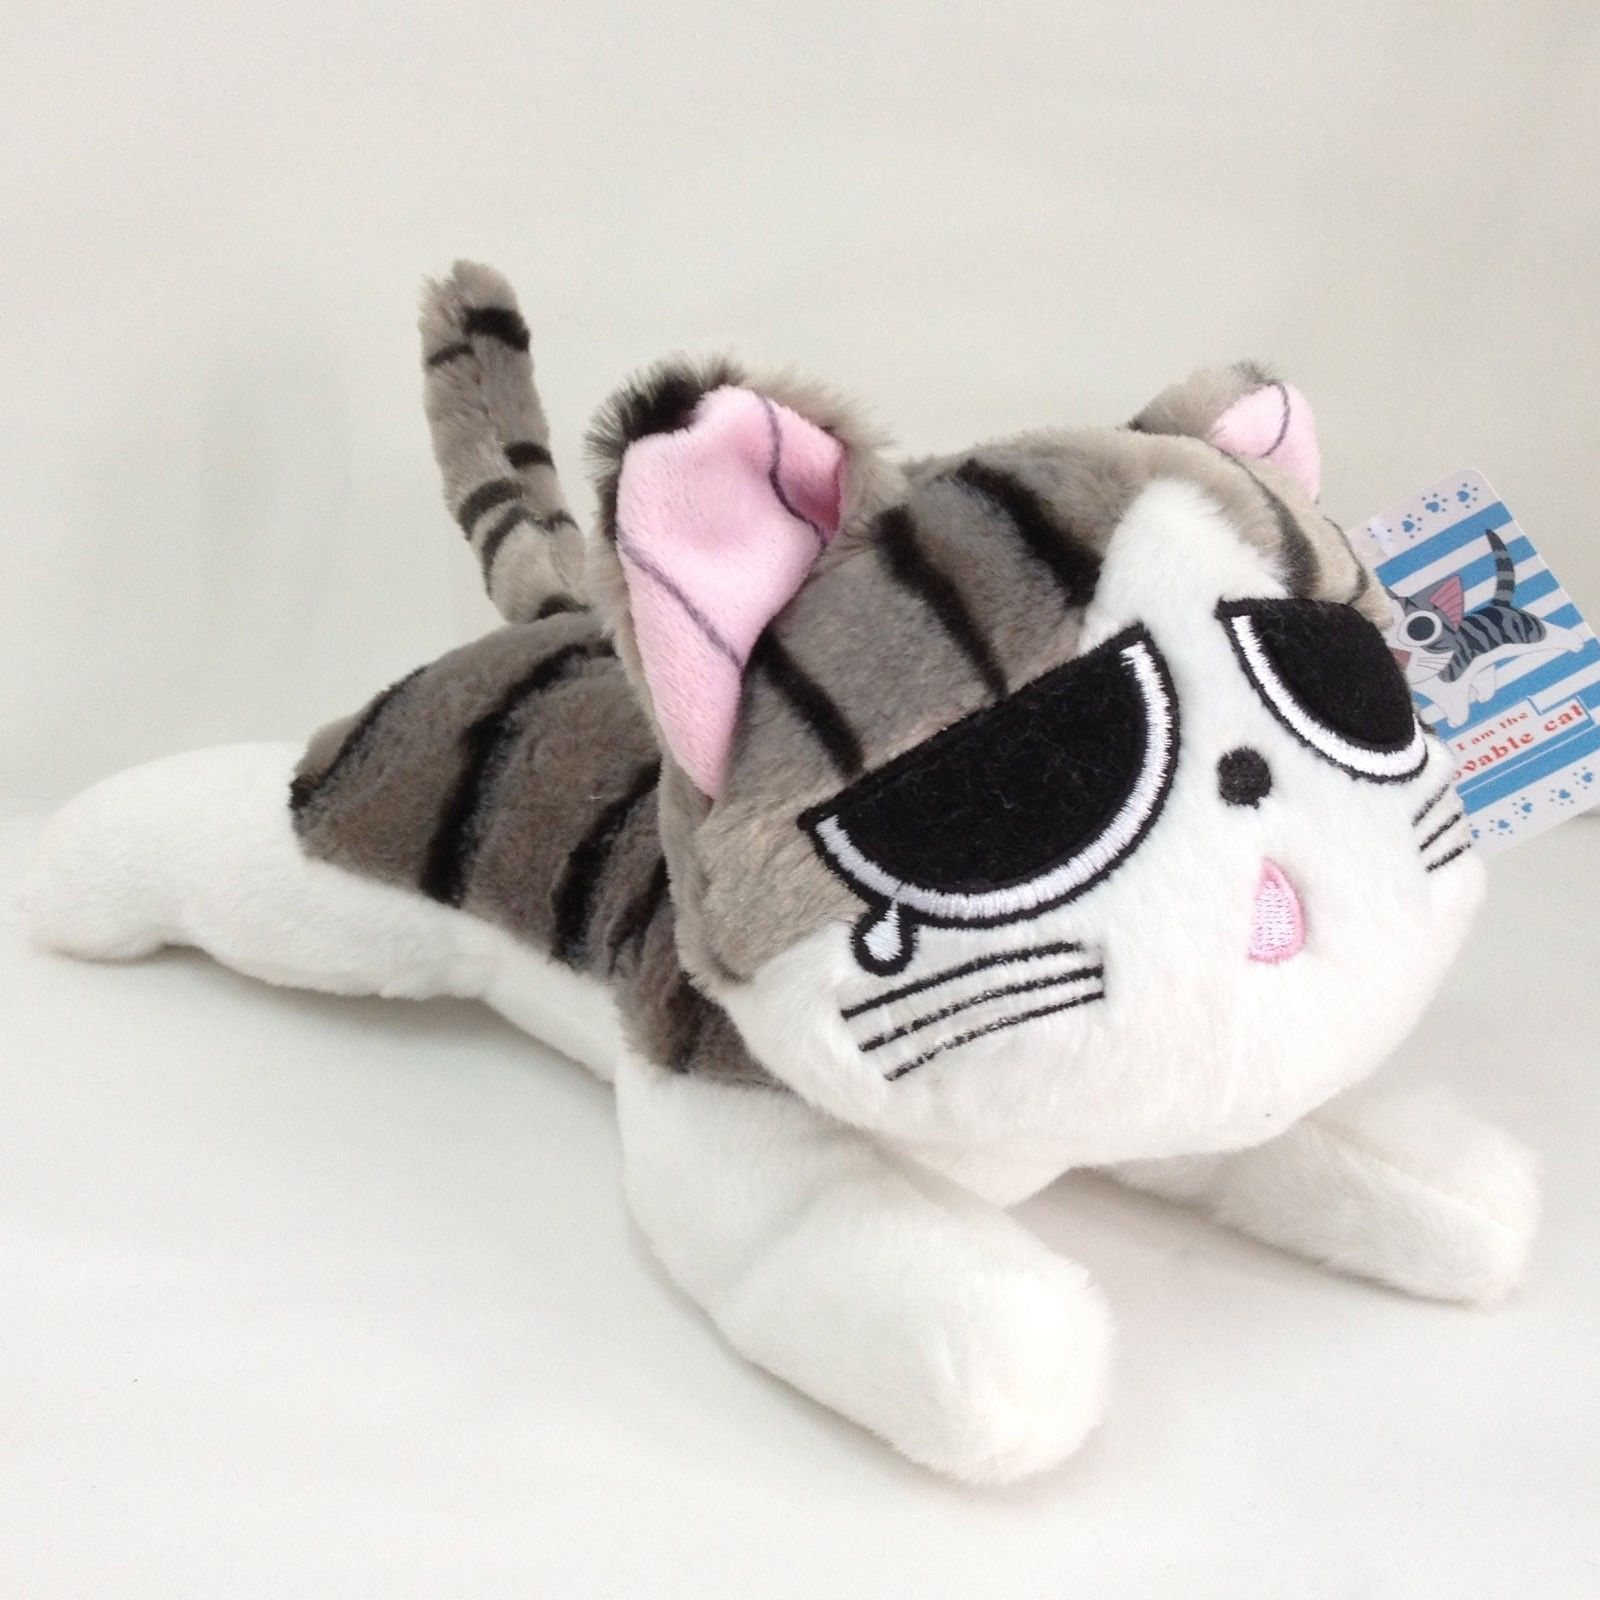 Predownload: 9 97 Chi S Sweet Home Anime Chi Cat Doll Plush Soft Toy Stuffed Animal Weeping 12 Ebay Collectibles Pet Toys Cat Doll Chi S Sweet Home [ 1600 x 1600 Pixel ]